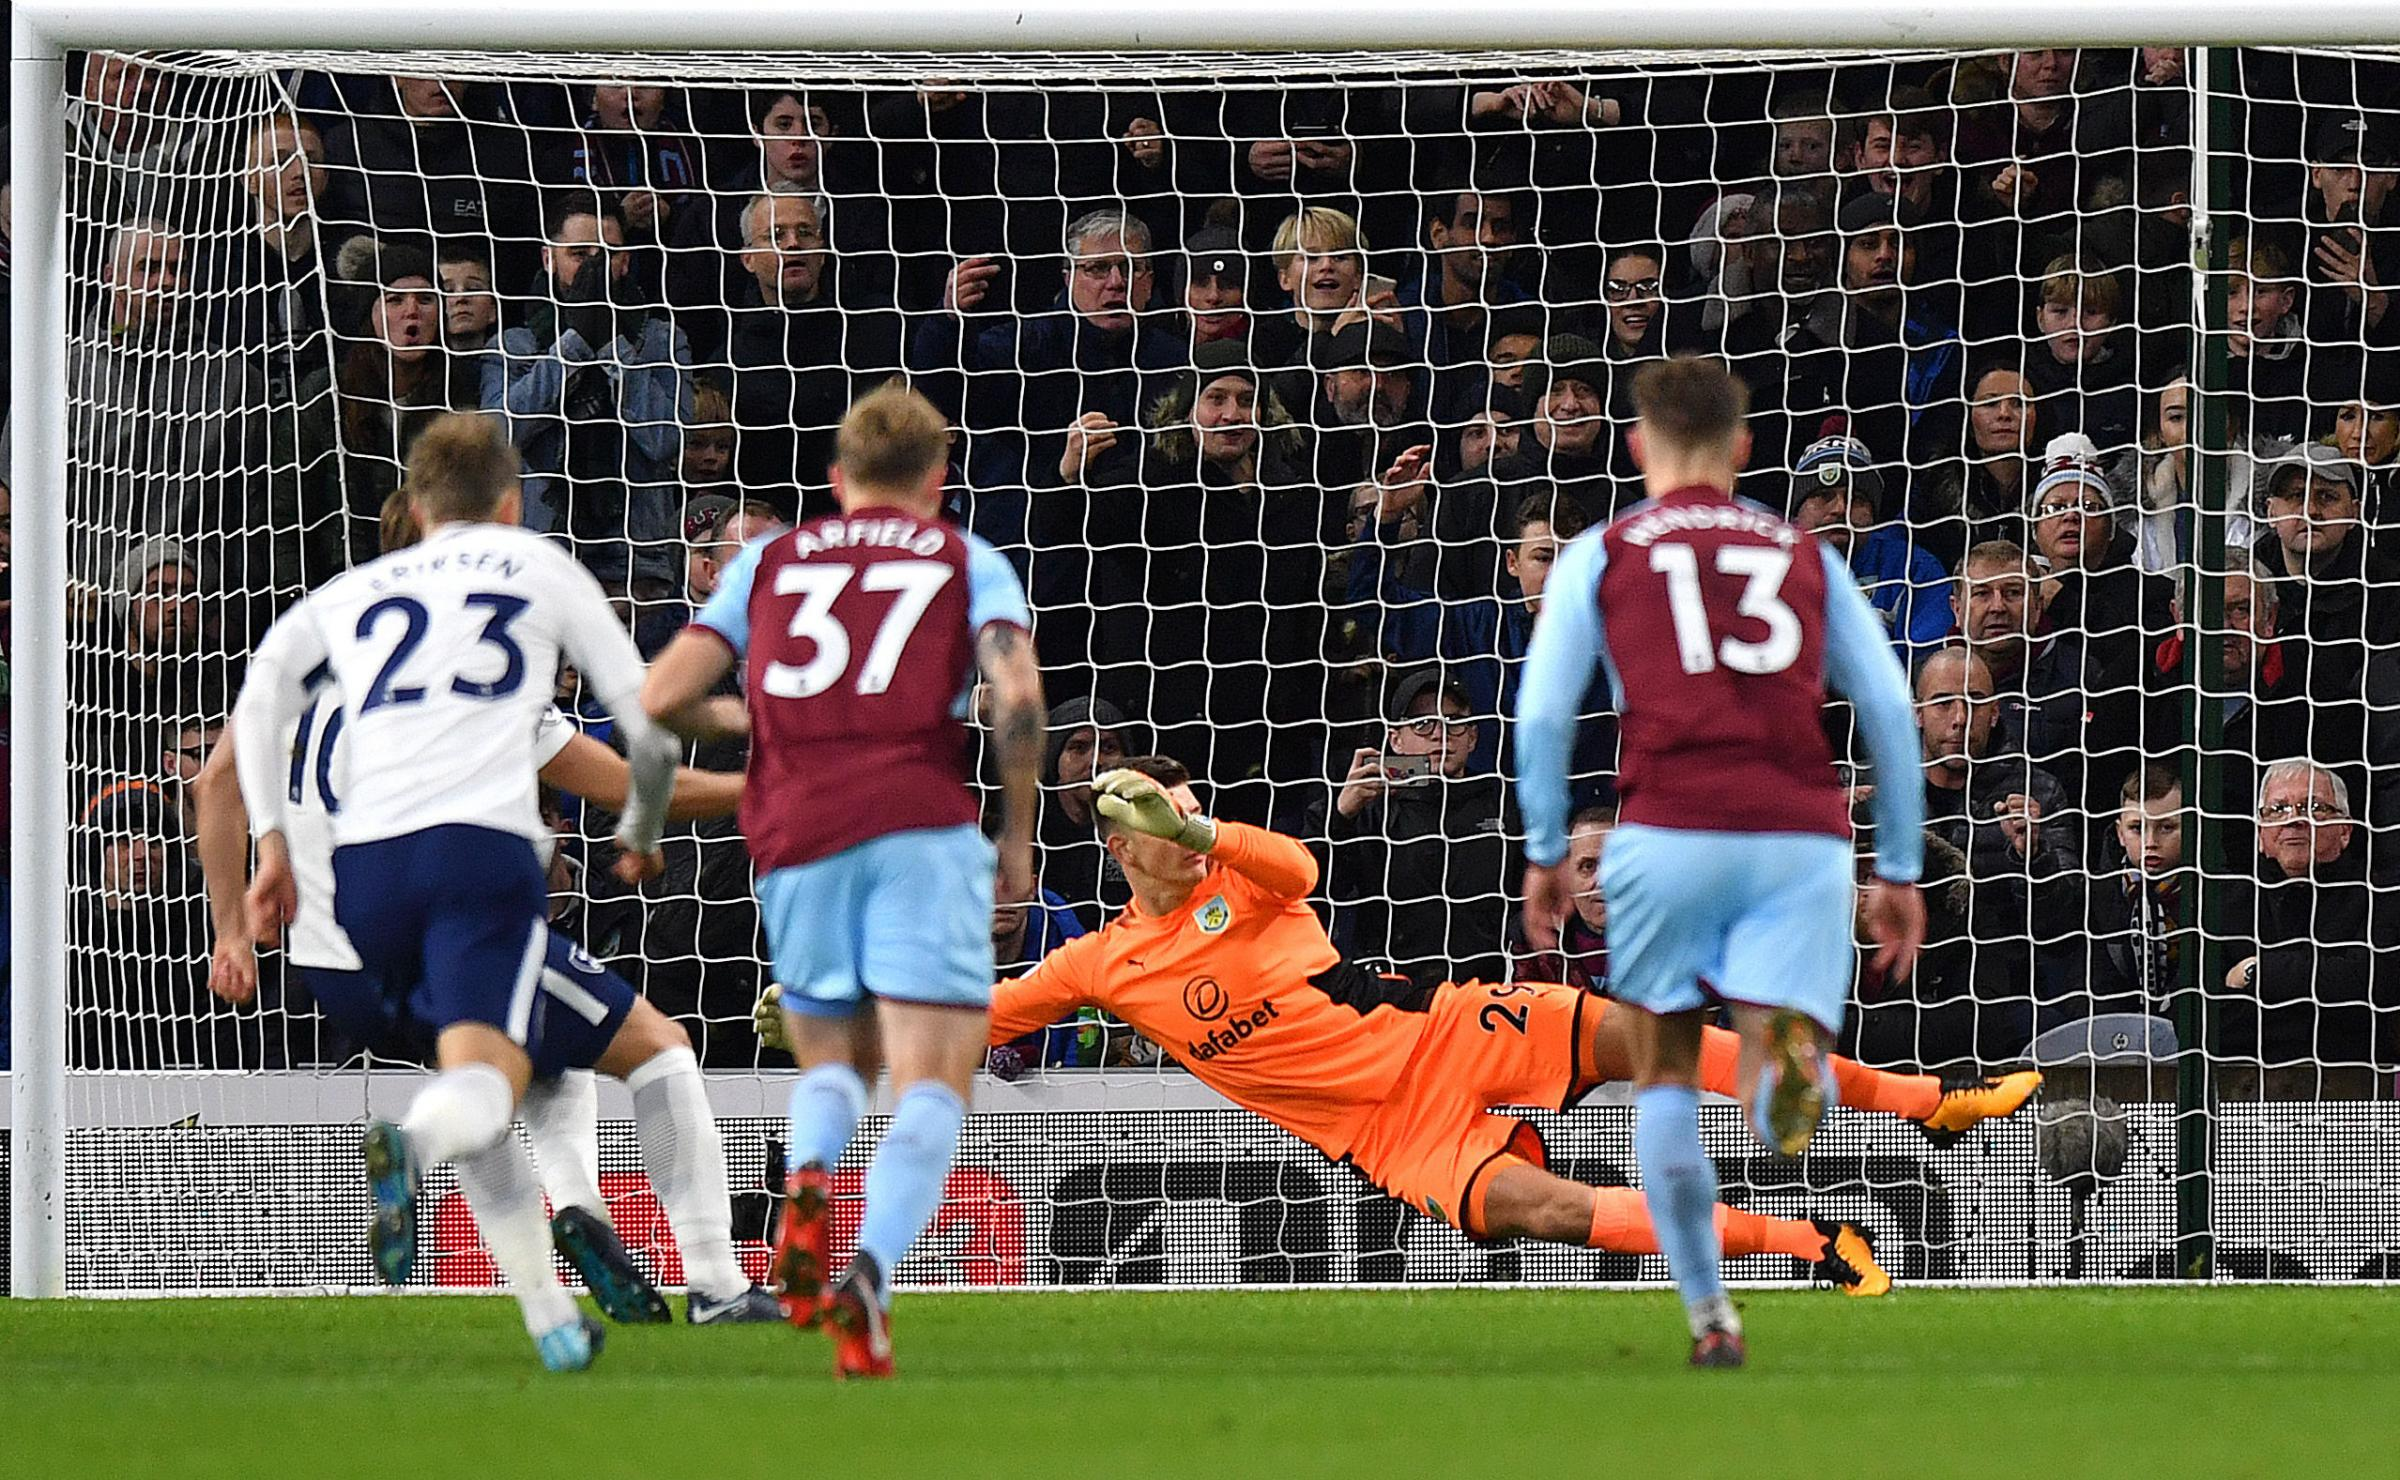 Harry Kane scores the spot after Tottenham were awarded a controversial penalty